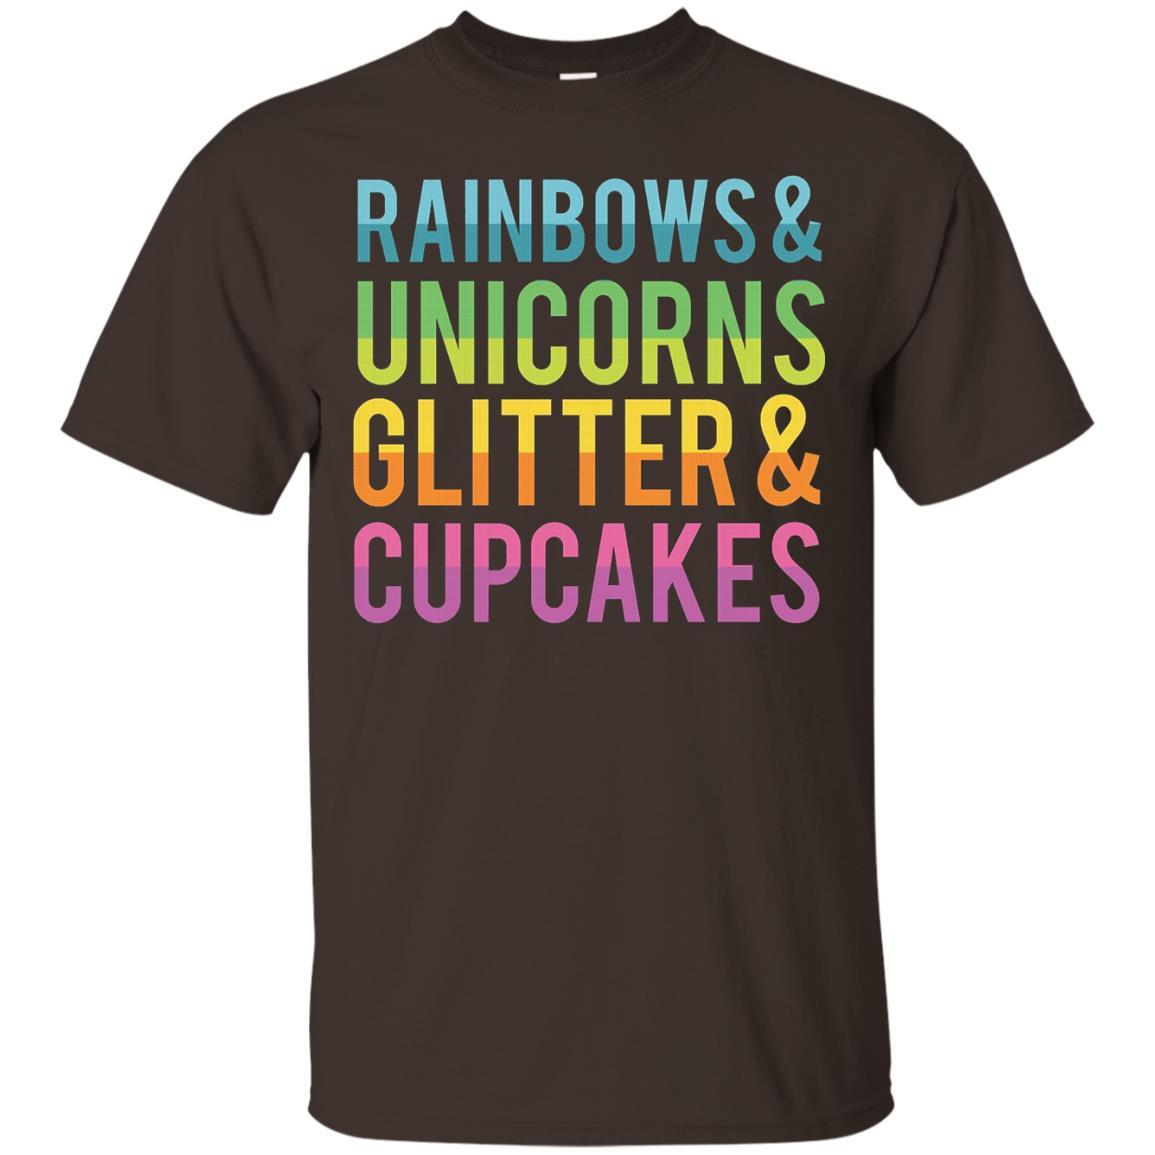 Rainbows and Unicorns Glitter and Cupcakes Funny T Shirt